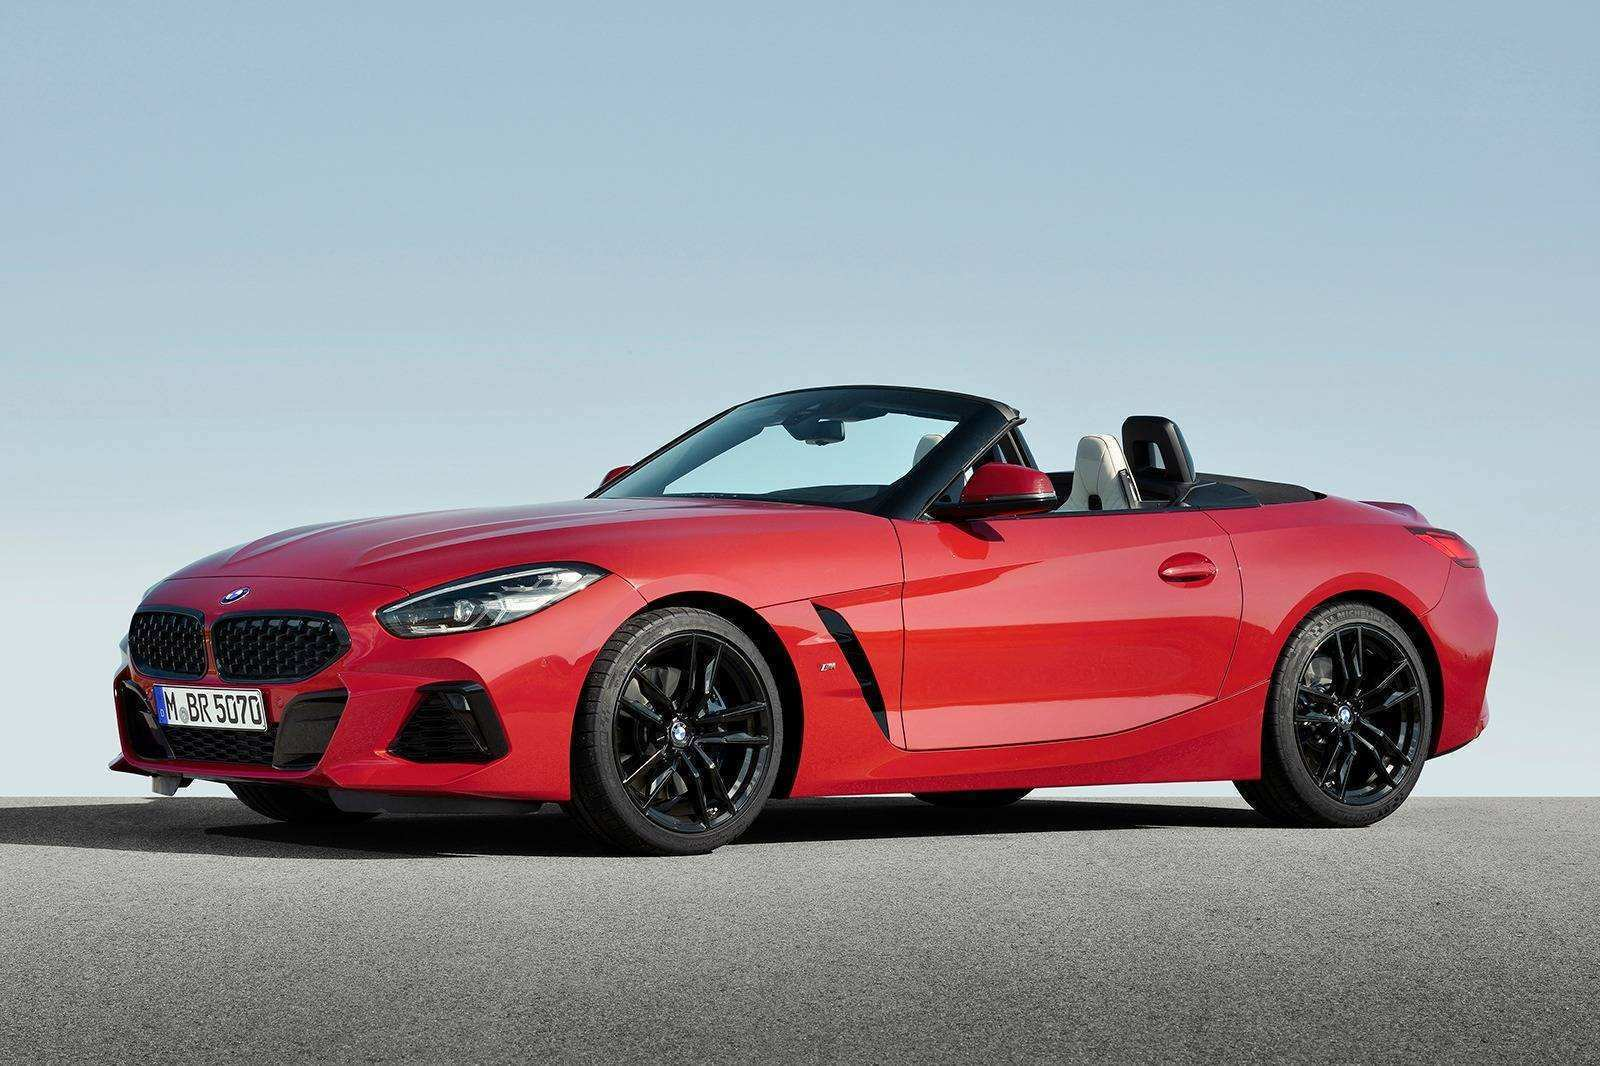 98 Best Review 2019 Bmw Roadster Ratings with 2019 Bmw Roadster